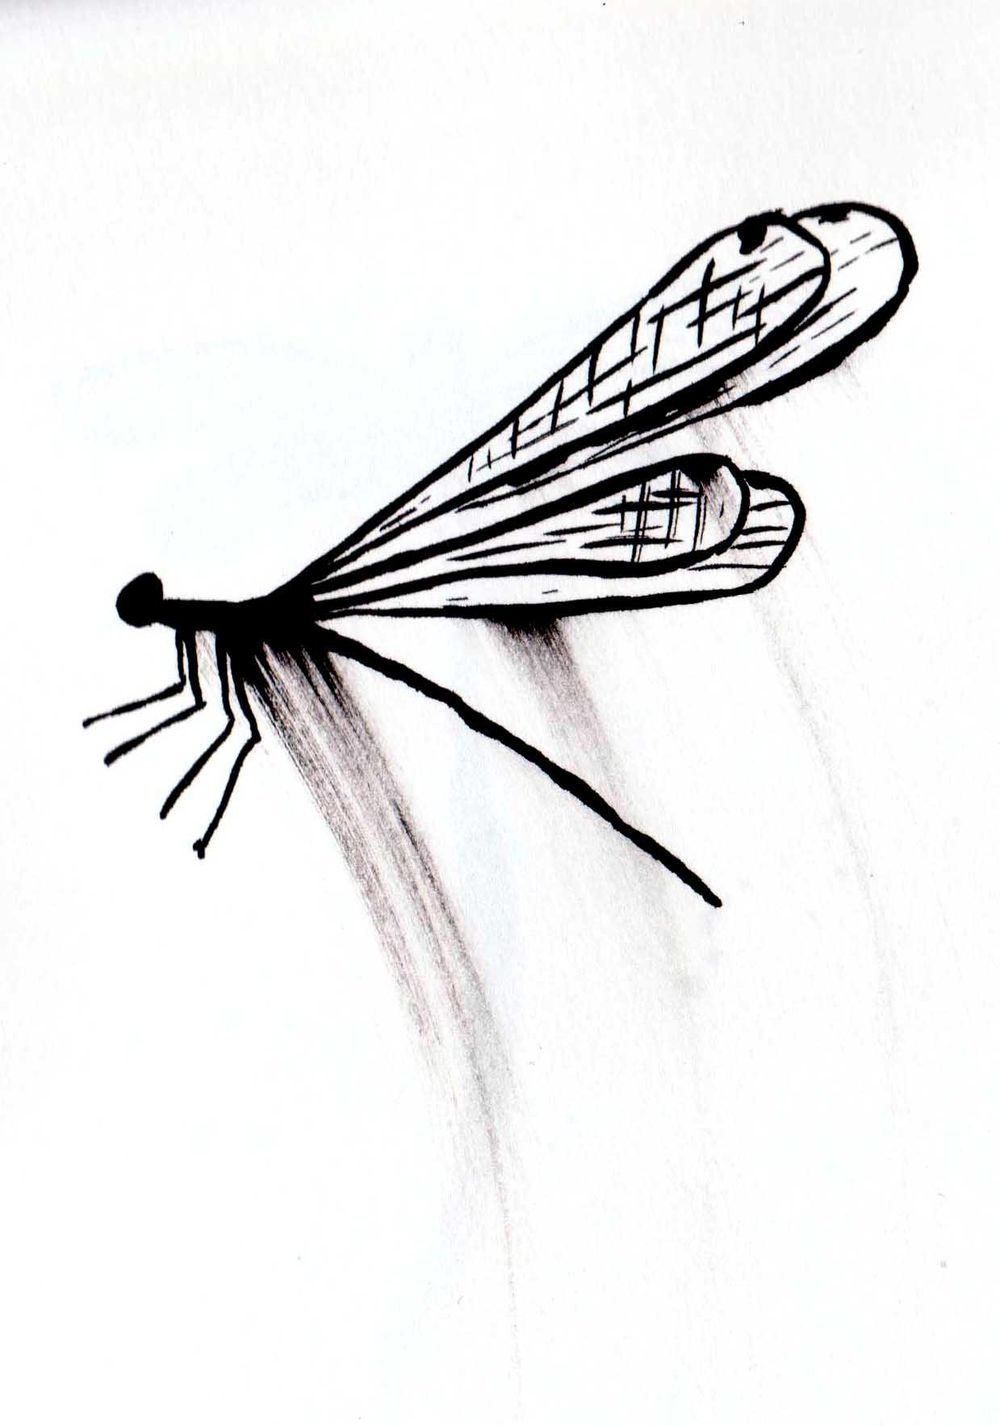 Dragonflies - image 2 - student project